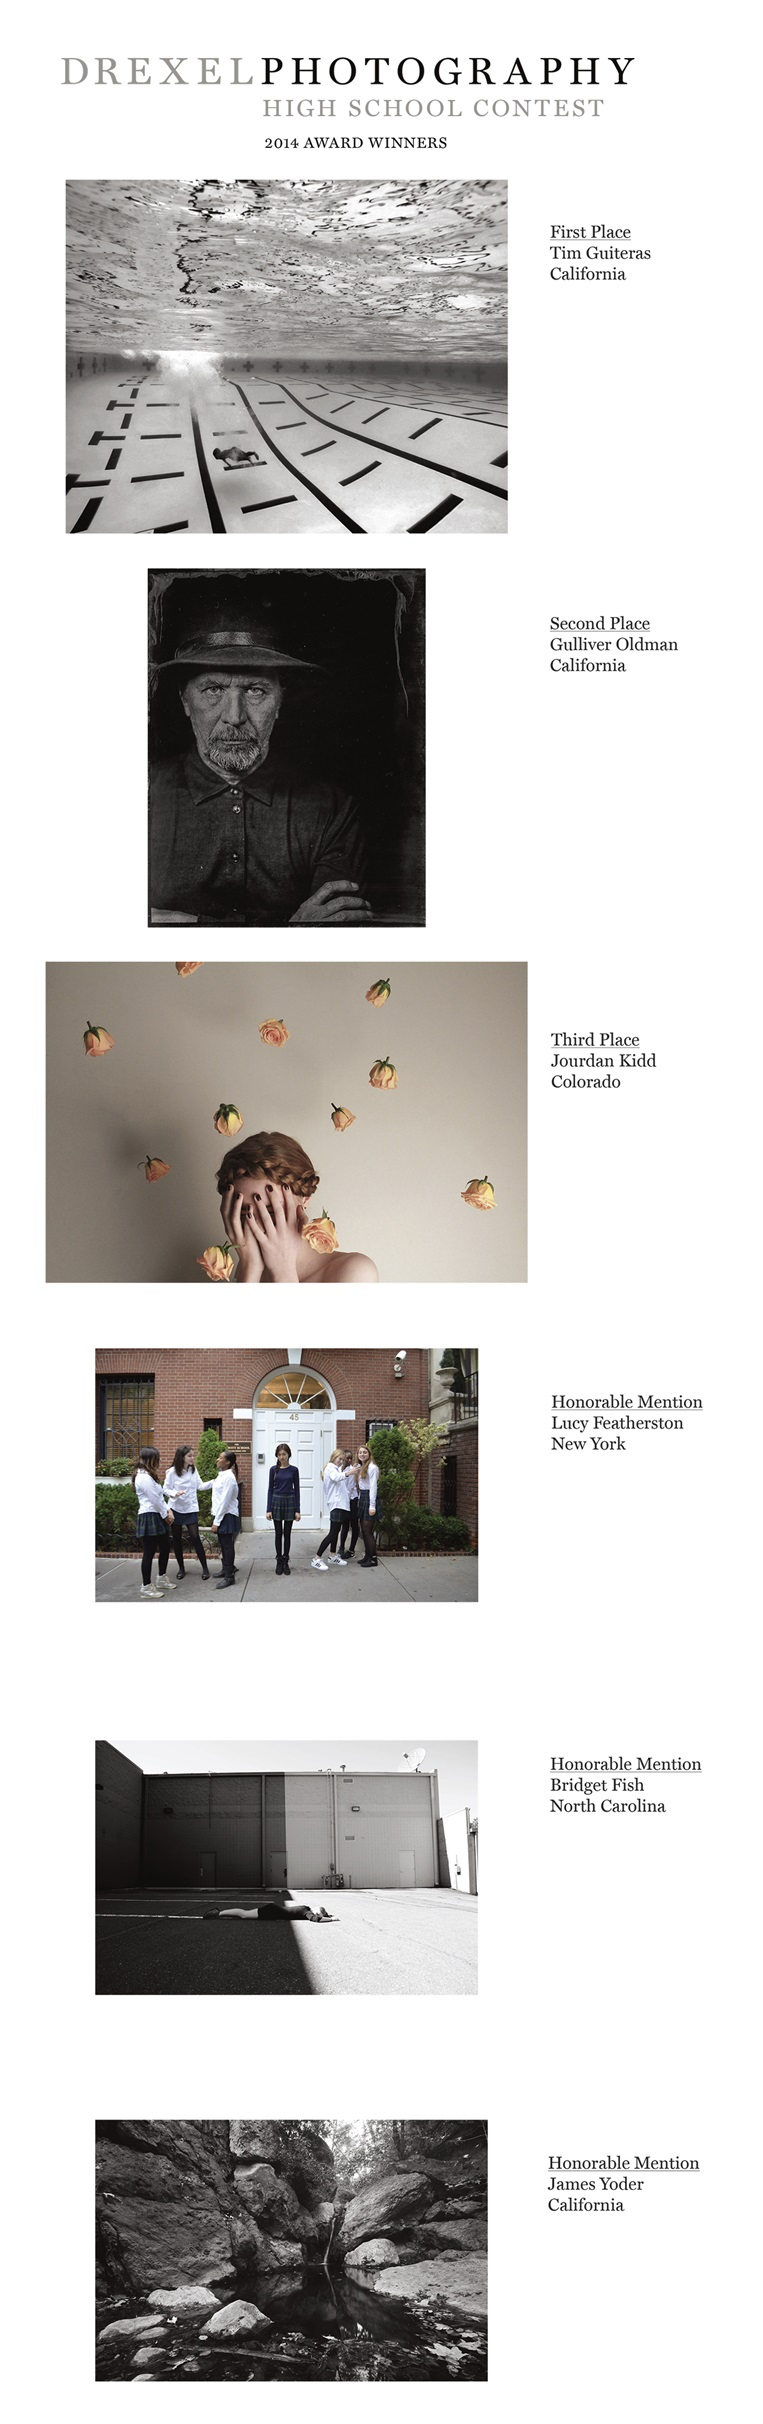 Drexel Photography High School Contest 2014 Award Winners